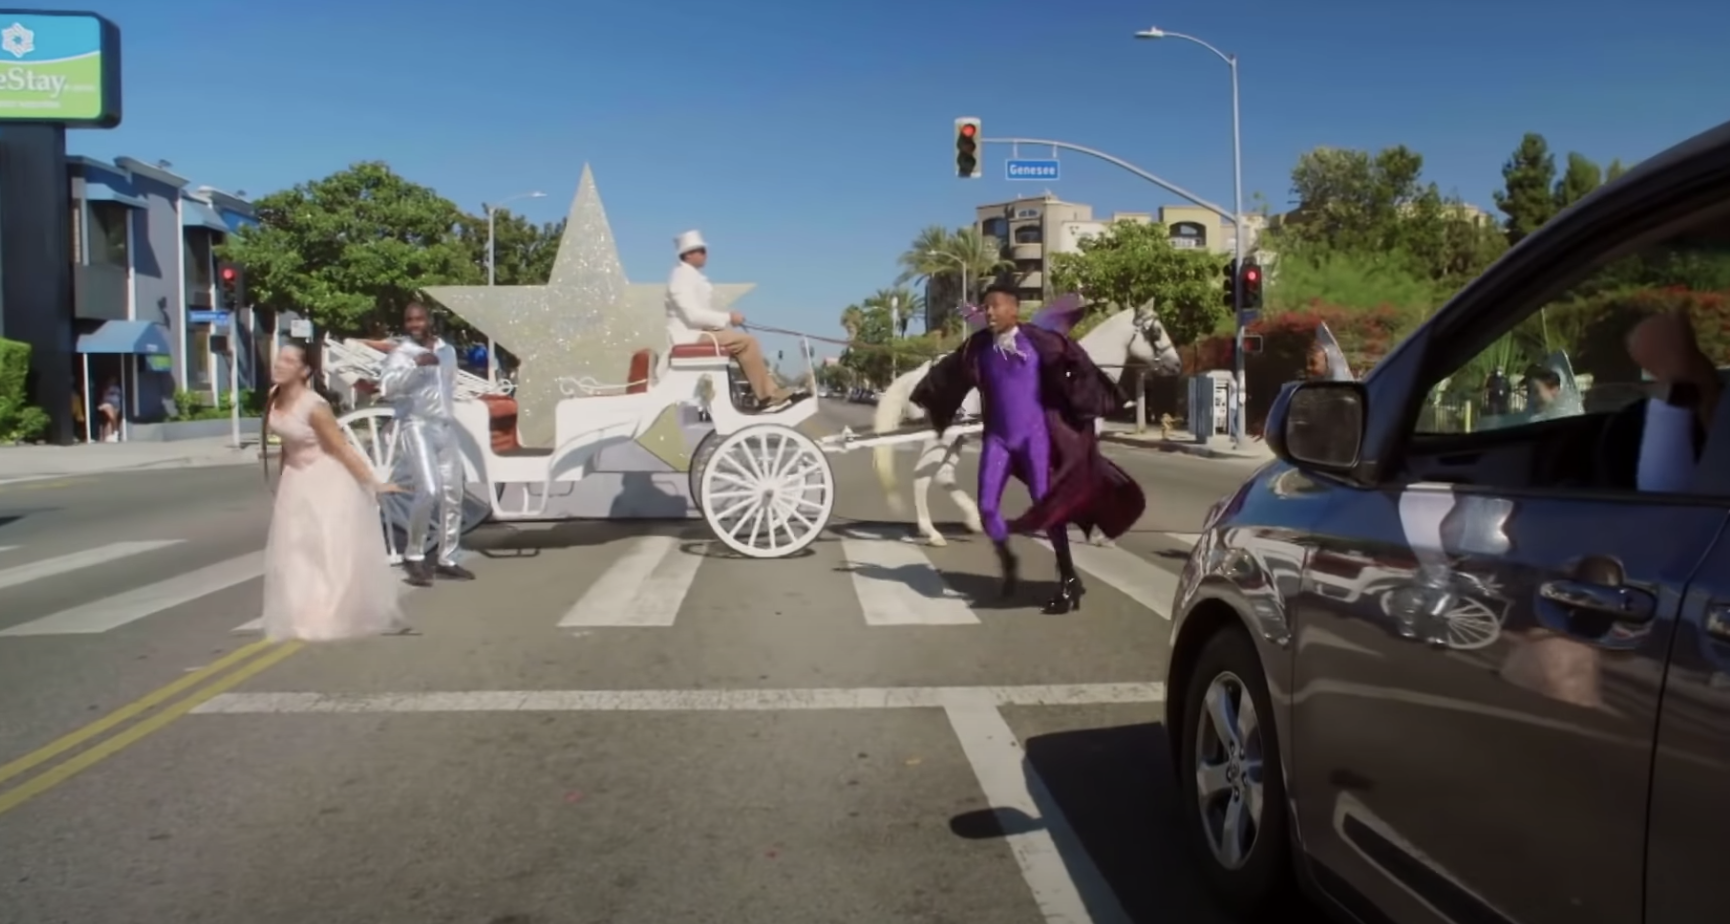 The cast standing in the crosswalk with a horse-drawn carriage in front of a car